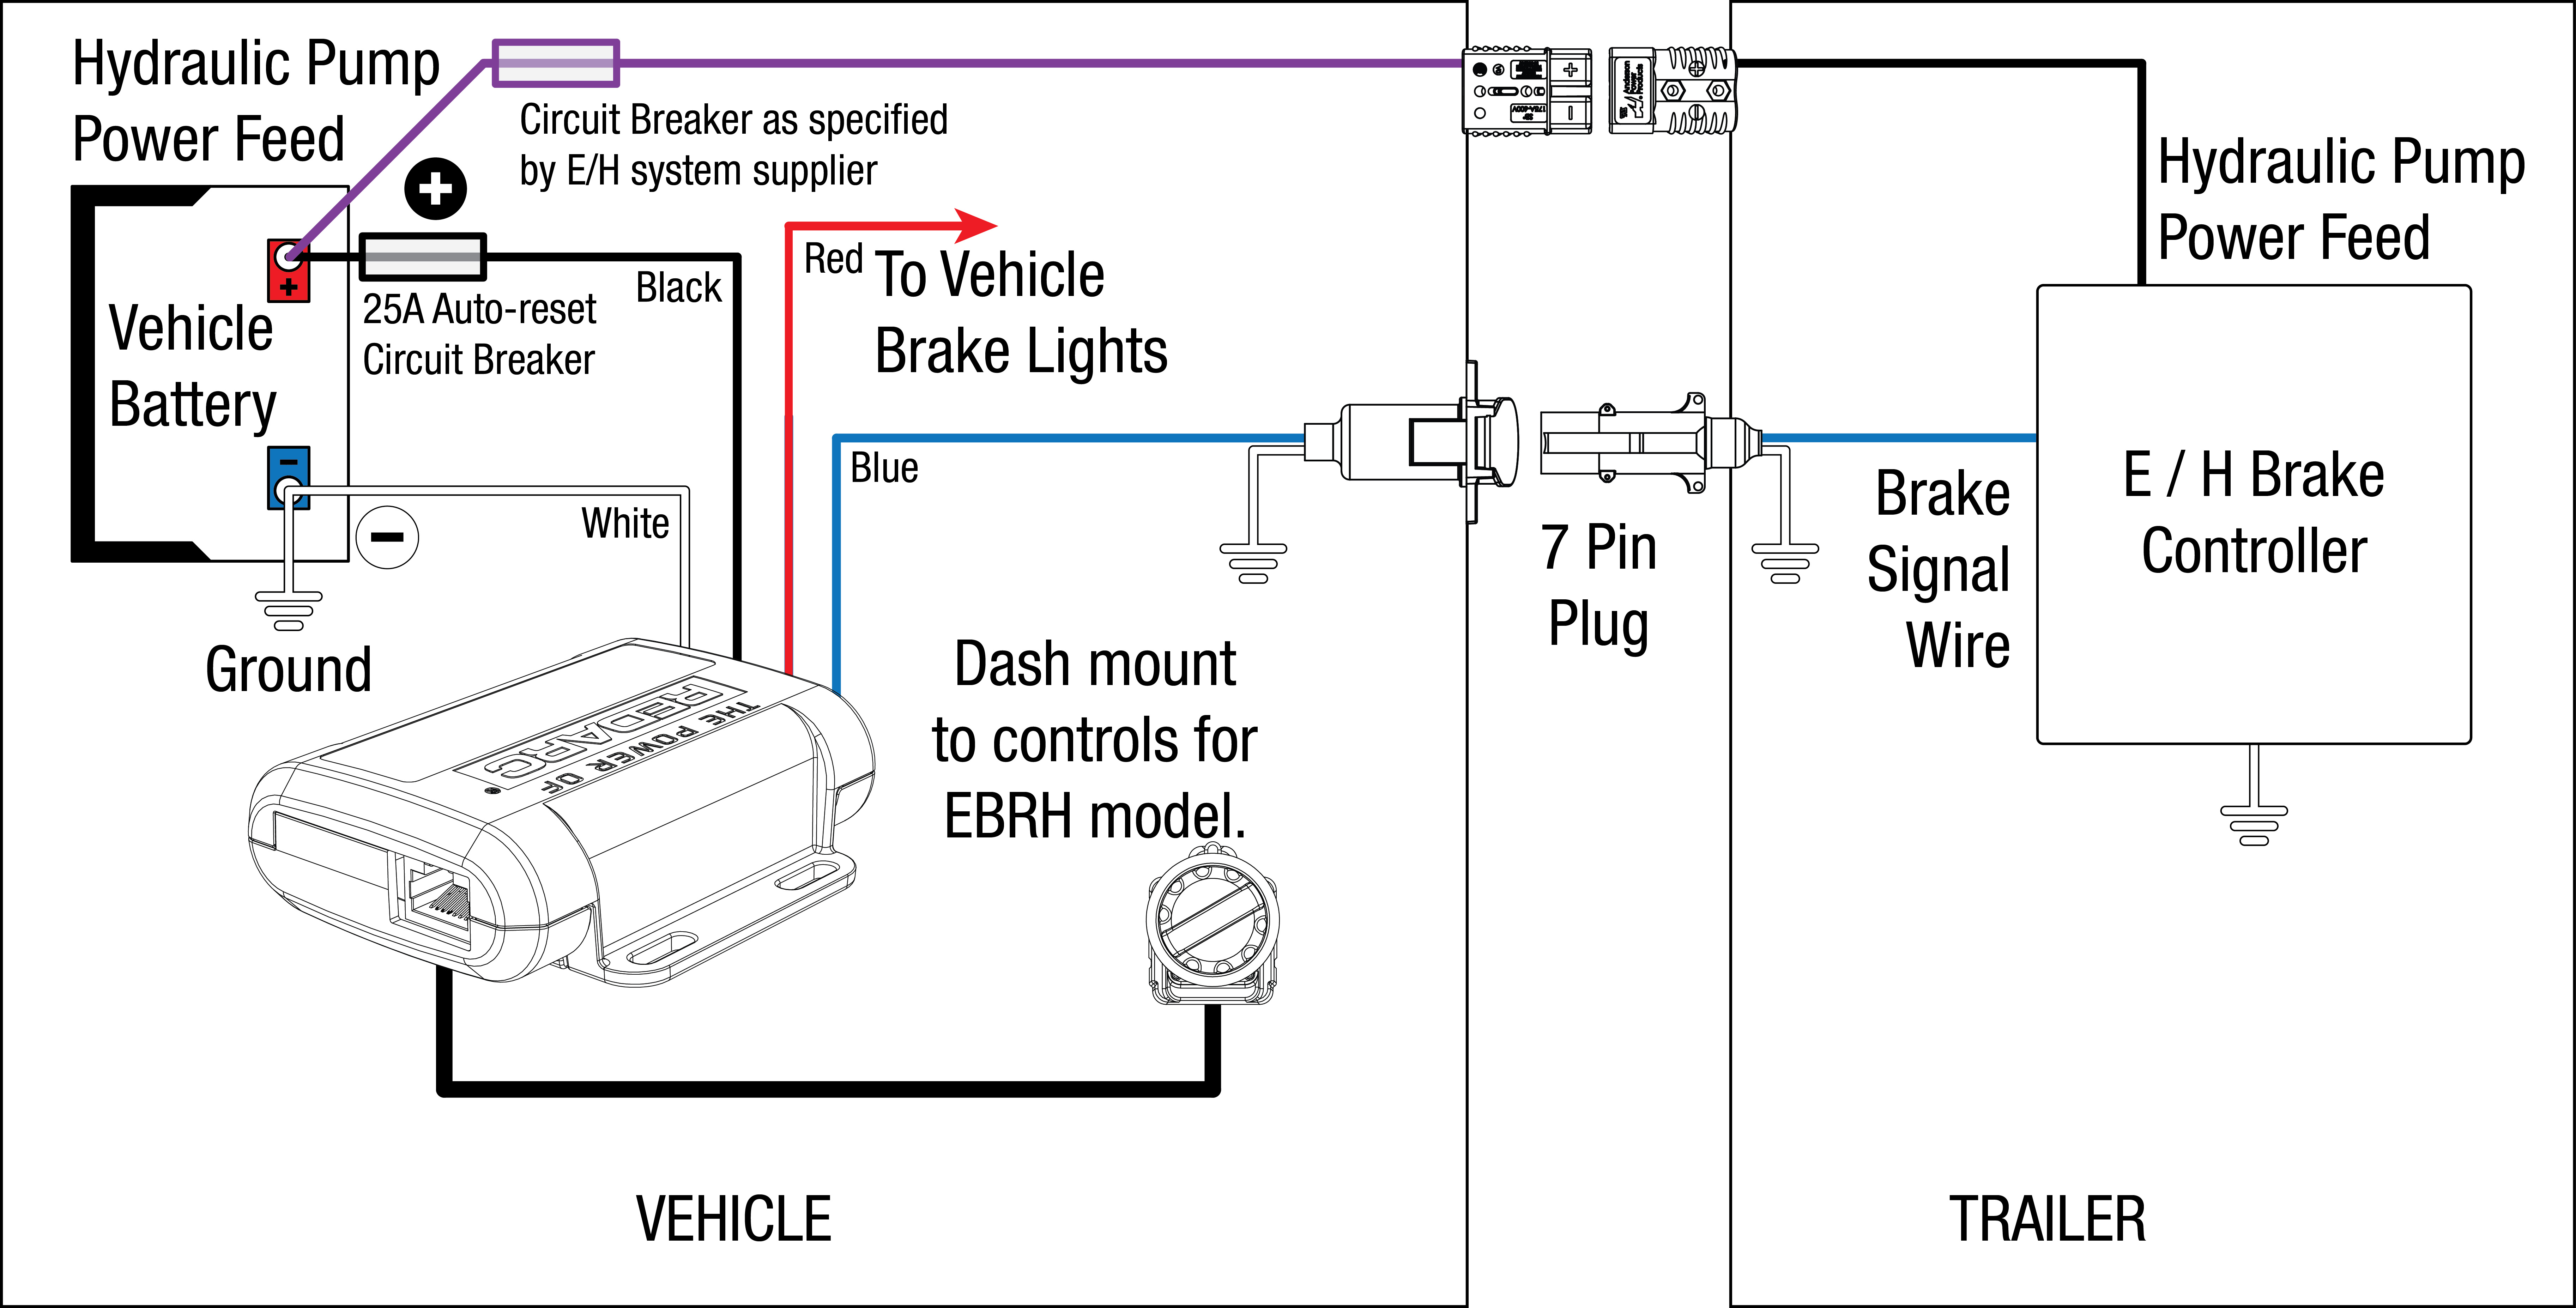 redarc bcdc1220 wiring diagram leviton switch instructions great installation of tow pro electric hydraulic braking systems electronics rh com au